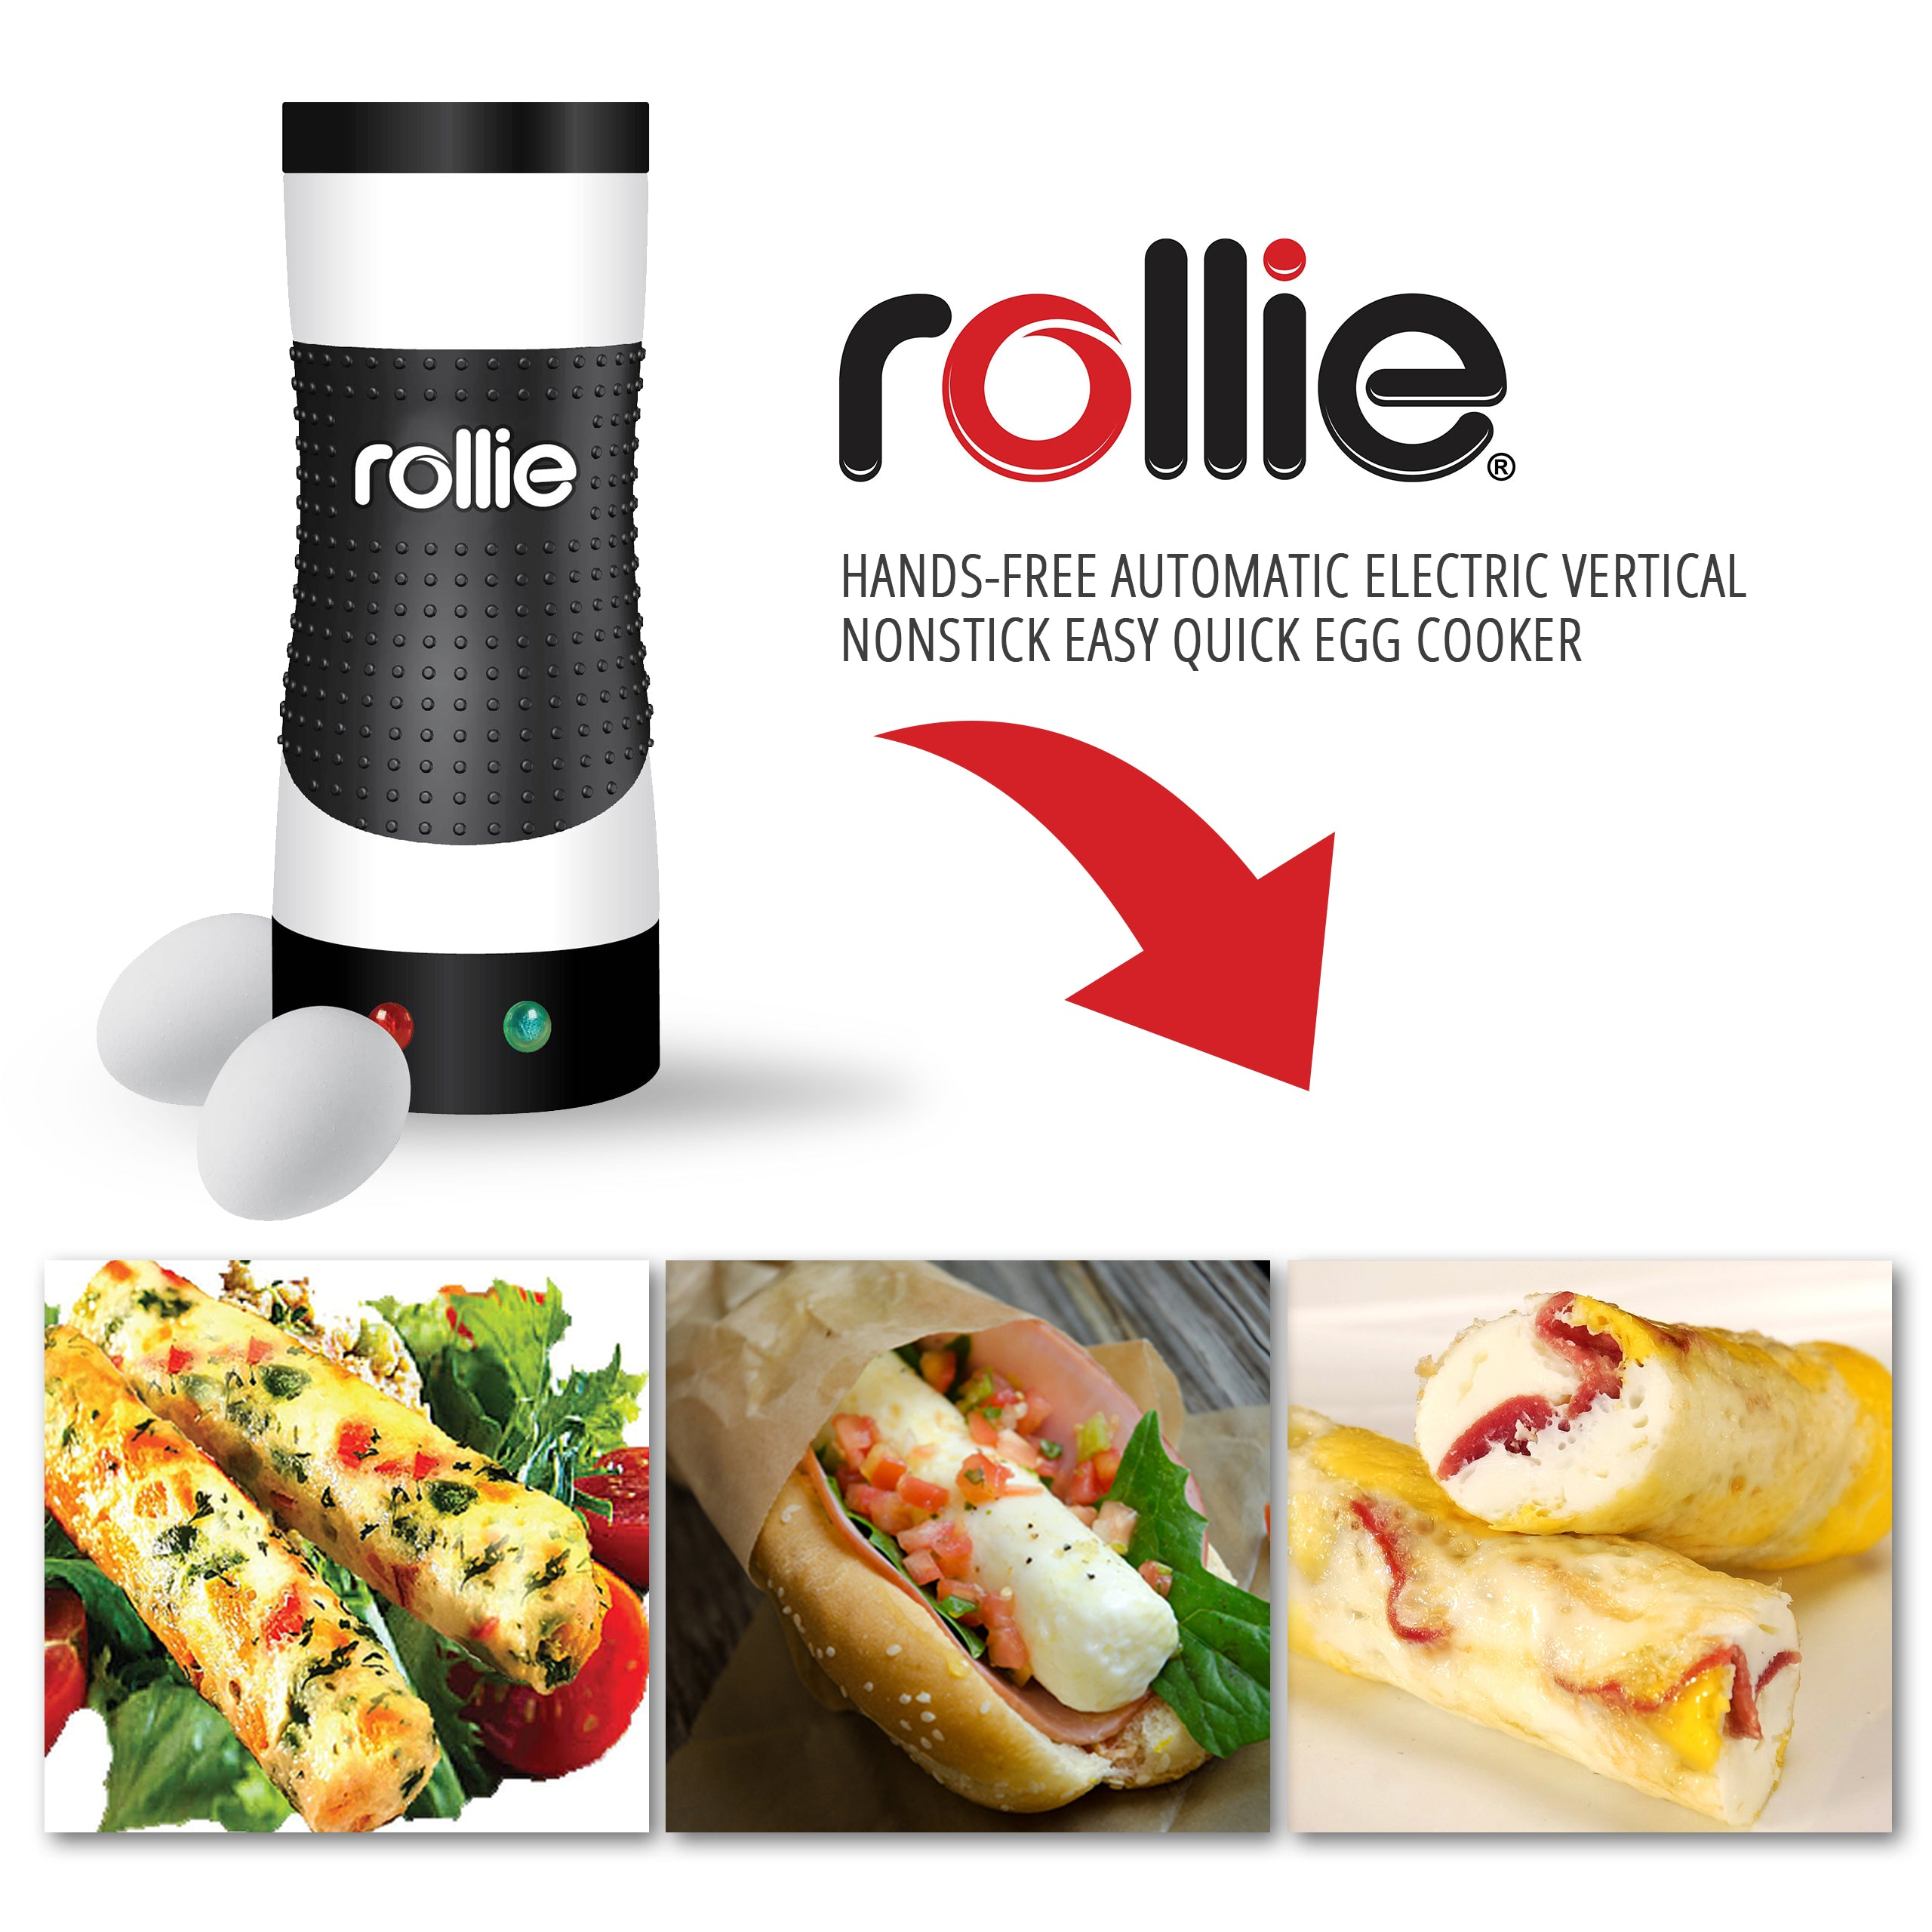 Rollie Egg Cooker. Hands-Free Automatic Electric fast and easy Egg Cooker